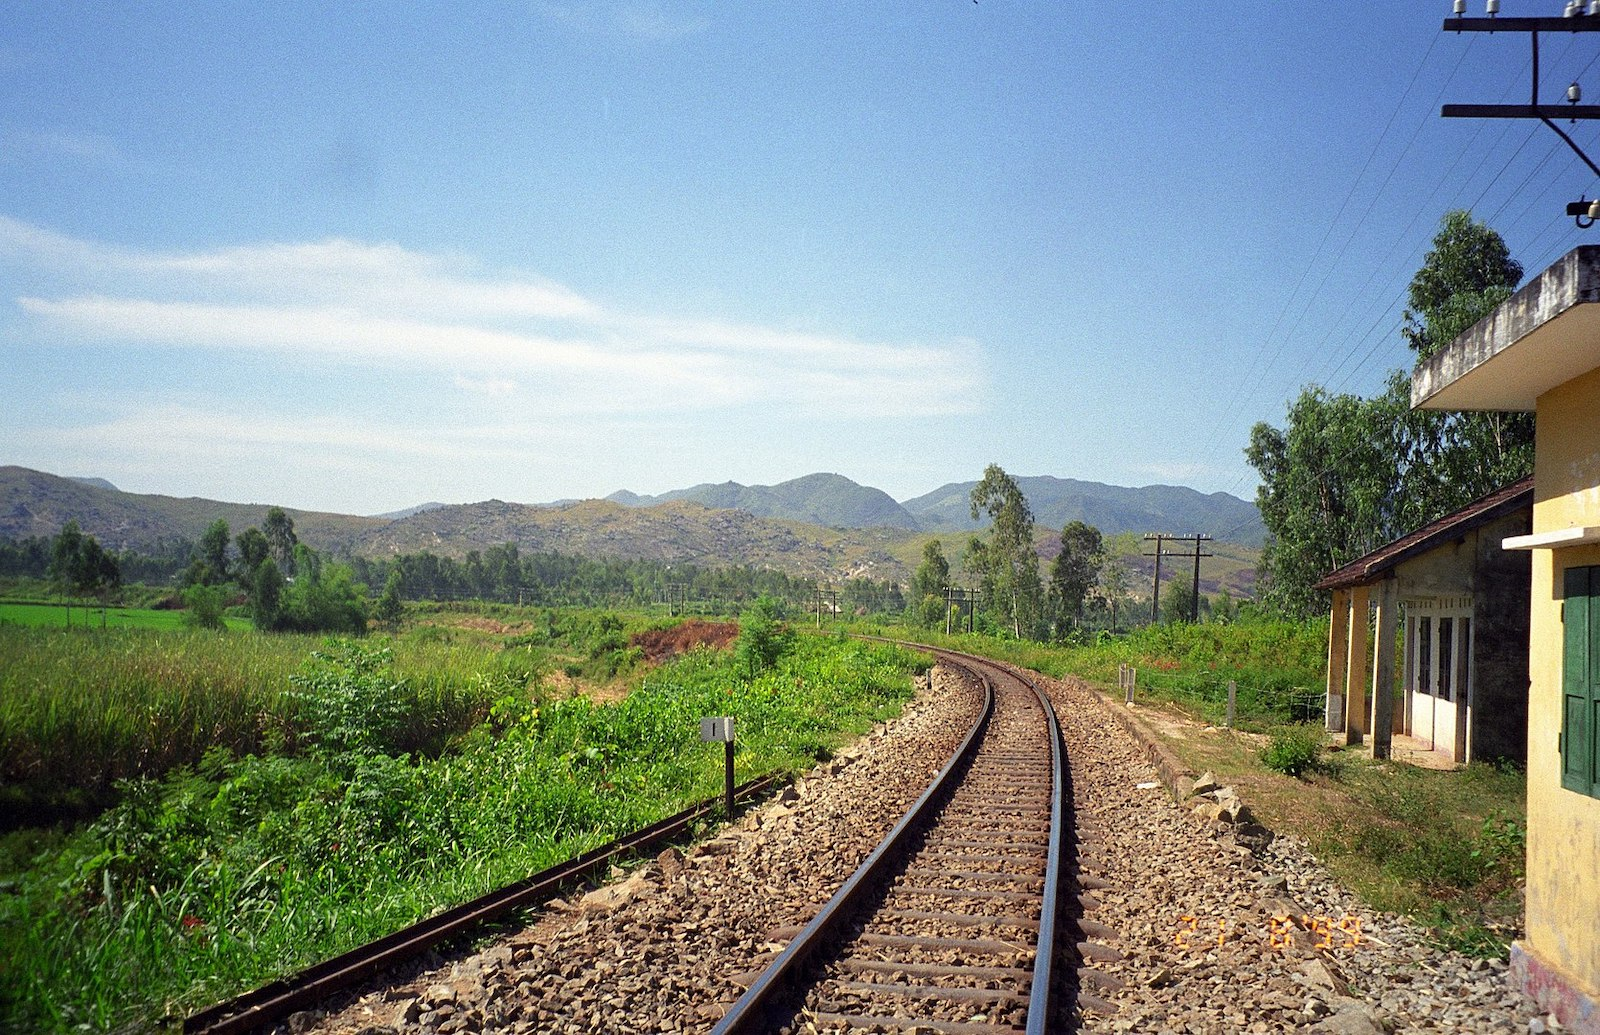 Image of the Reunification Express train tracks near My Son Sanctuary in Vietnam